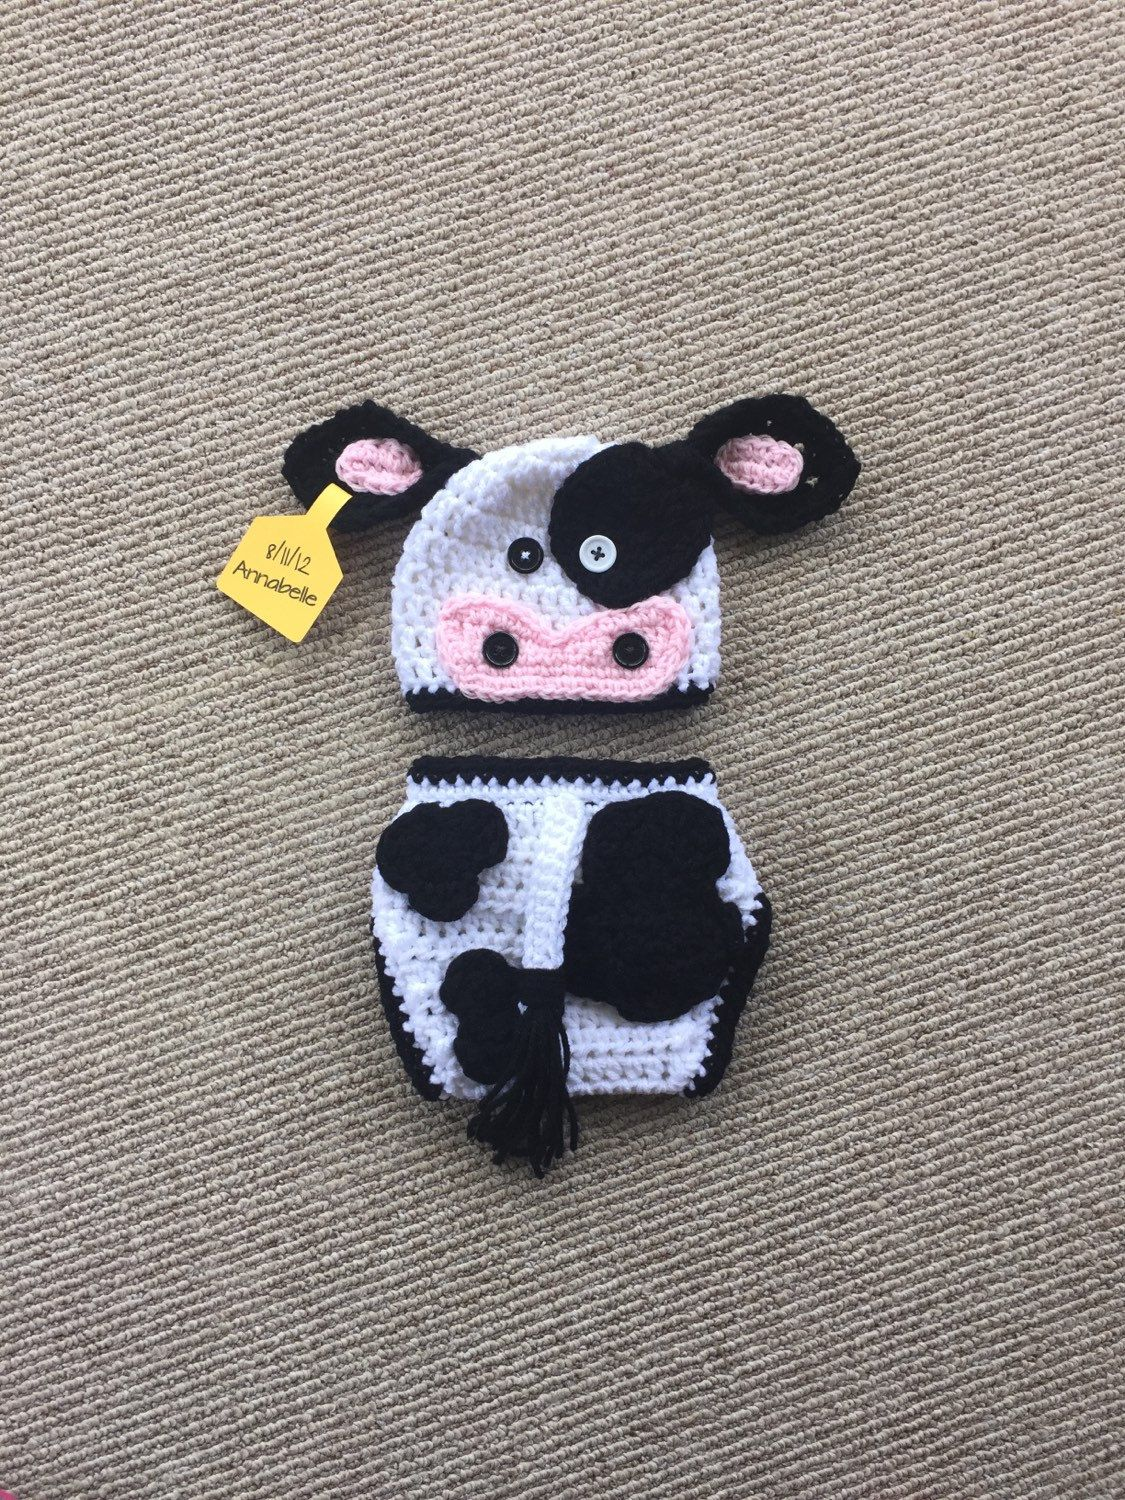 Black and White Crochet Cow Hat and Diaper Cover - Farm Animals - Photo  Prop - Available in Any Size or Color Combo by DanitasBoutique on Etsy fce8ad05aef